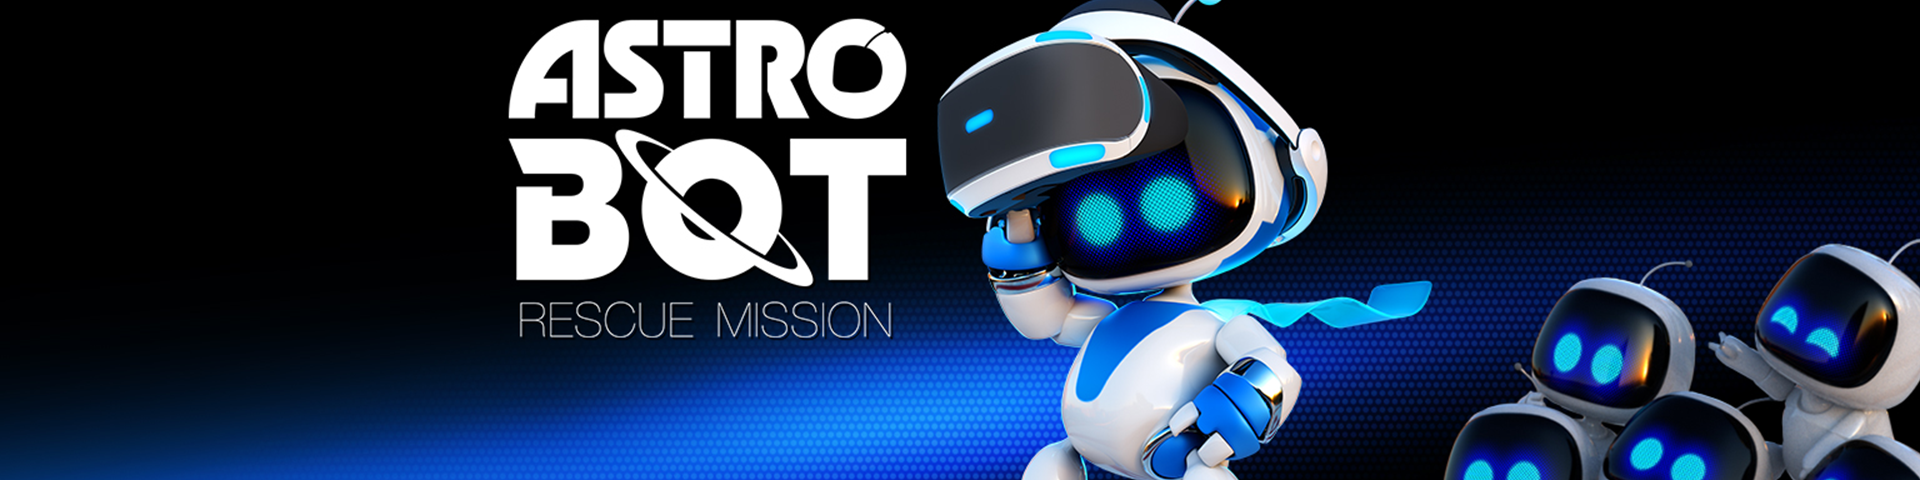 Astro Bot Rescue Mission Review Header.png